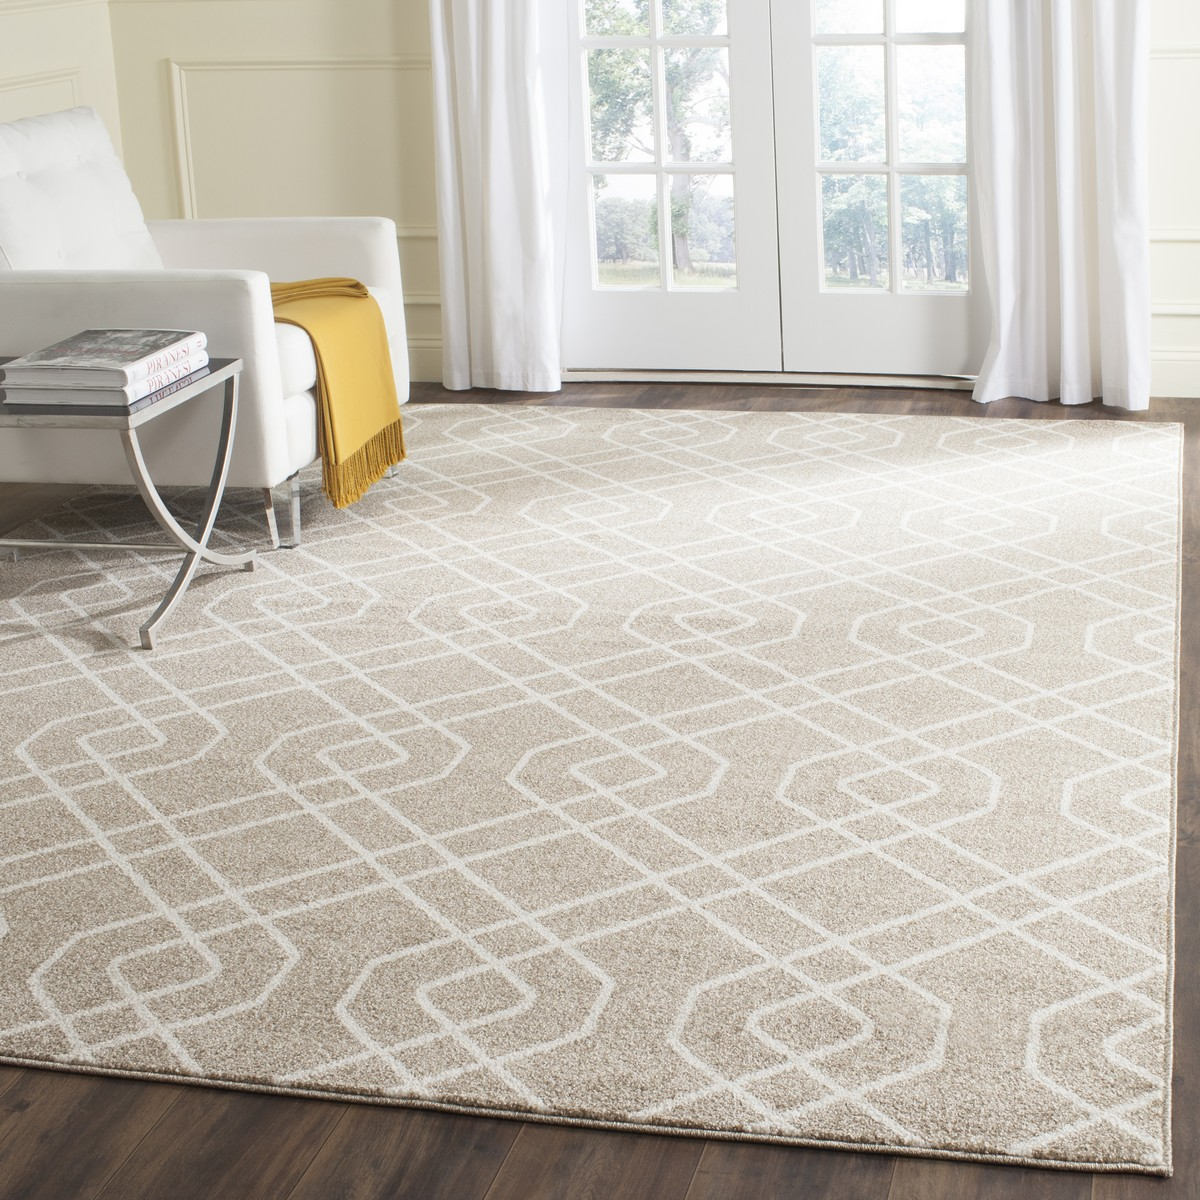 Rug Amt407s Amherst Area Rugs By Safavieh